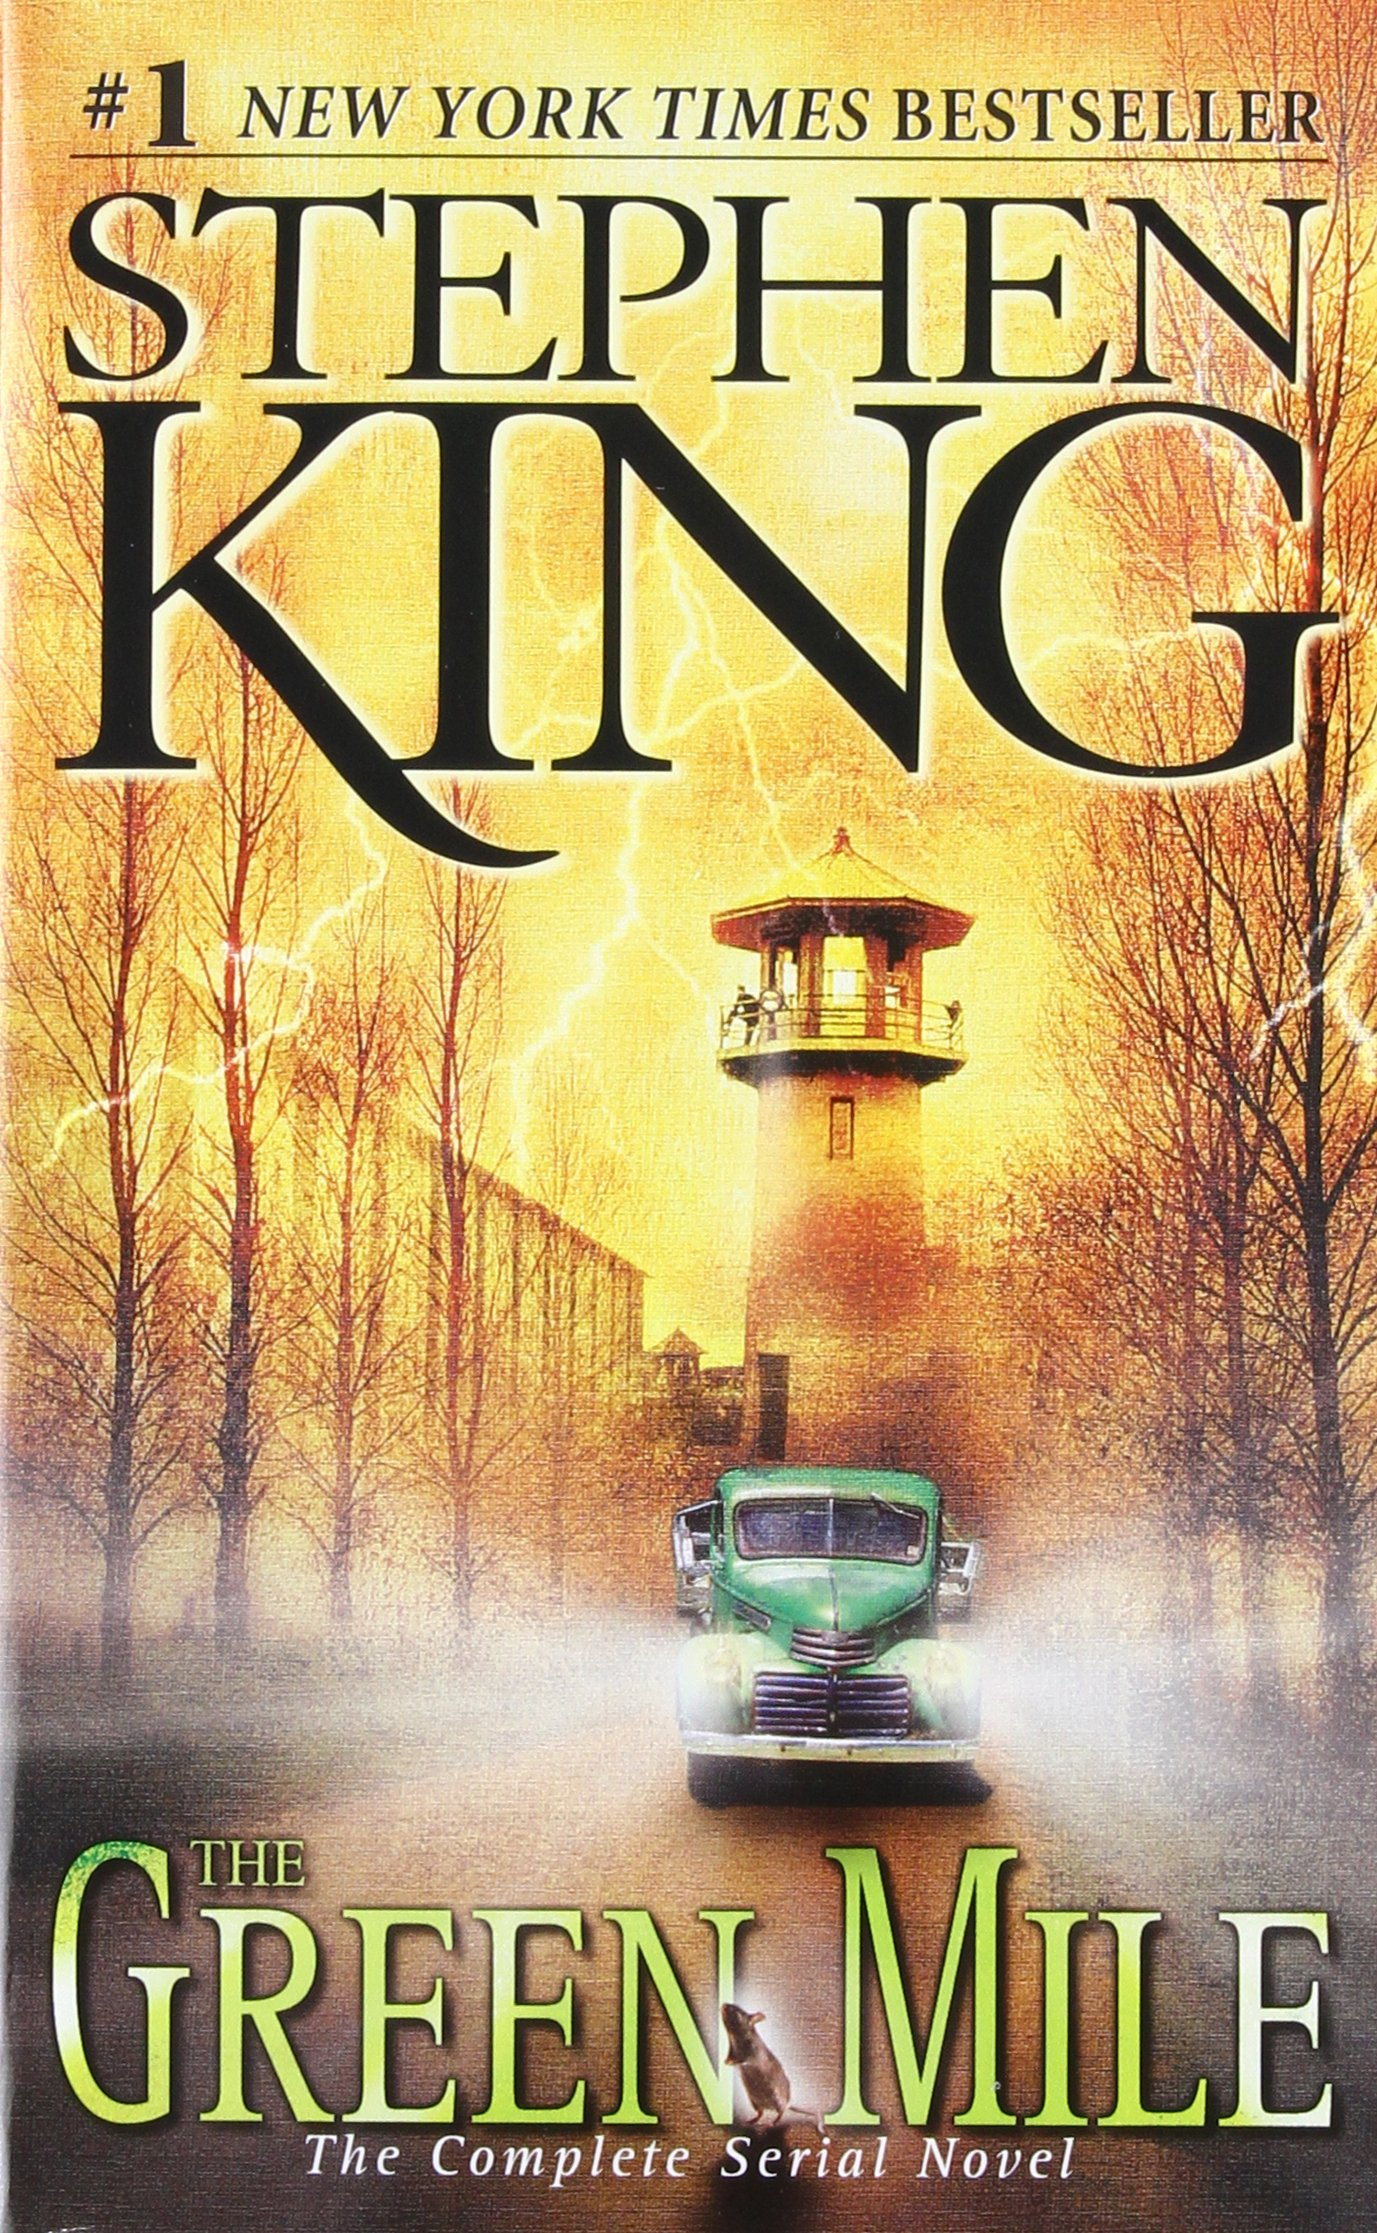 Amazon.com: The Green Mile (9780671041786): King, Stephen: Books